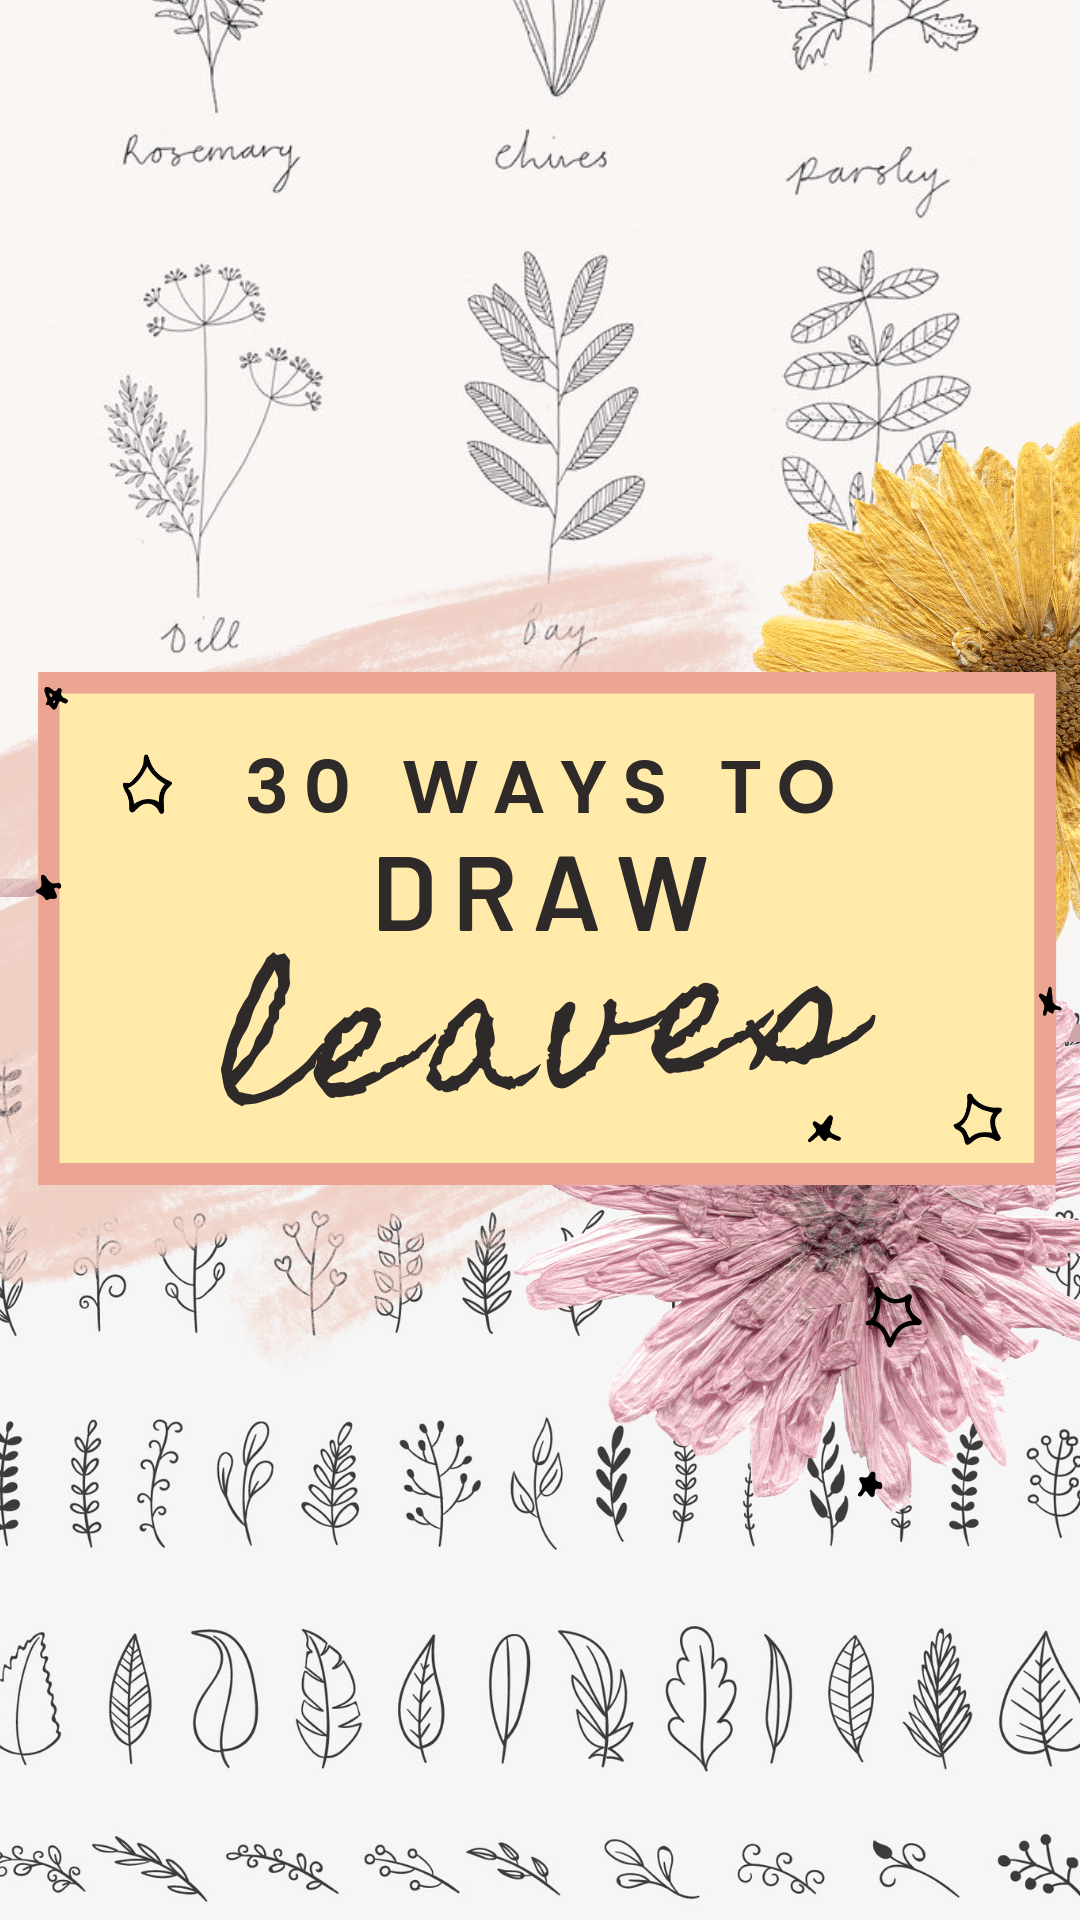 30 Ways to Draw Plants and Leaves